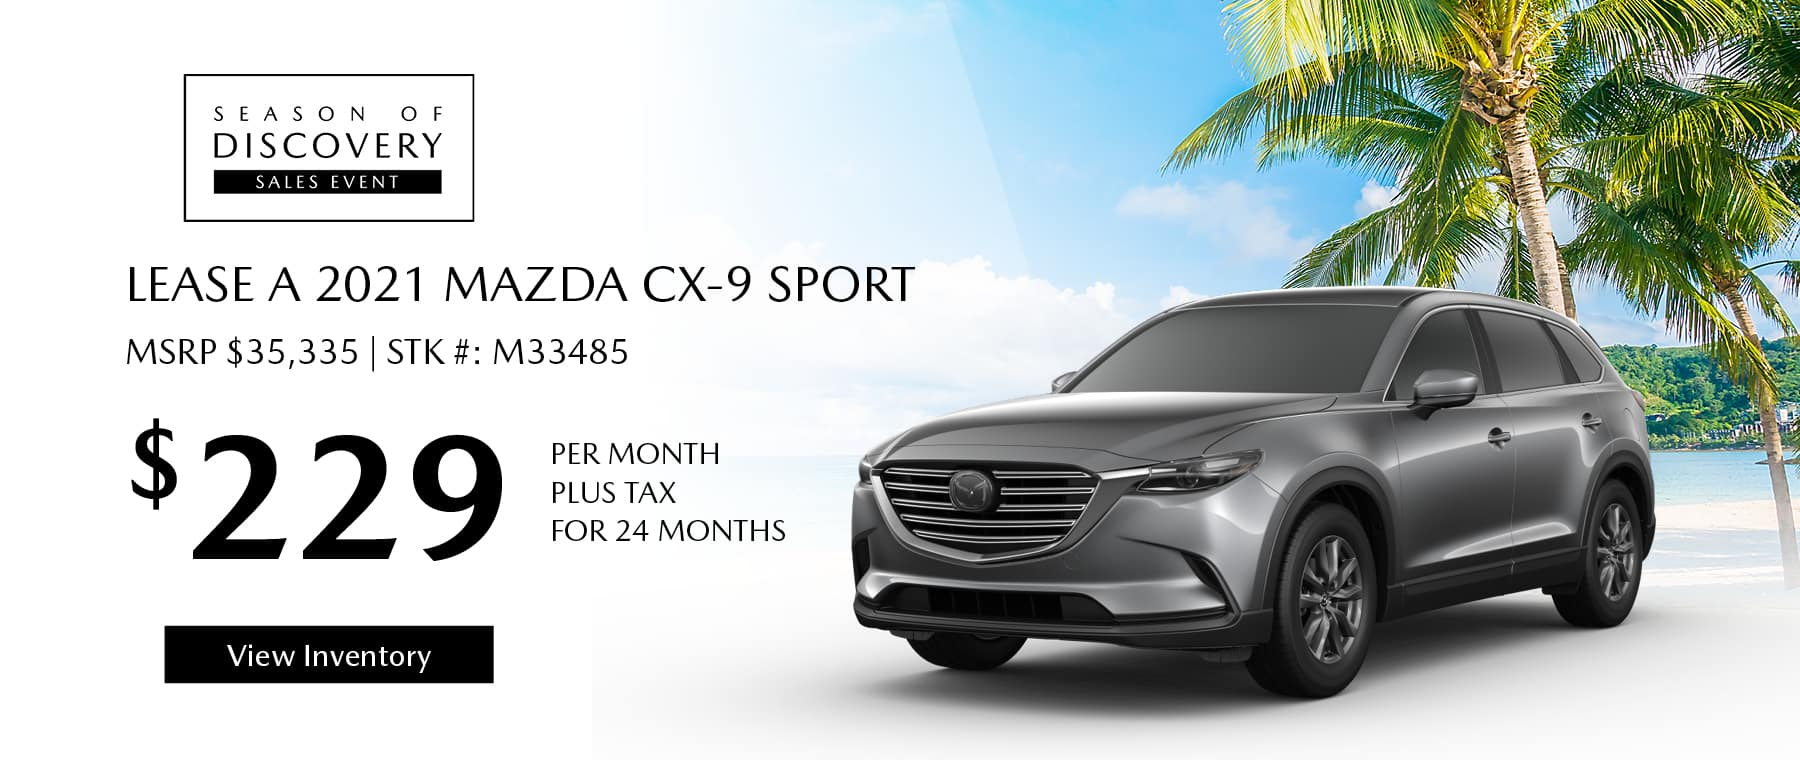 Lease the 2021 Mazda CX-9 for $229 per month, plus tax for 24 months. Click or tap here to view our inventory.